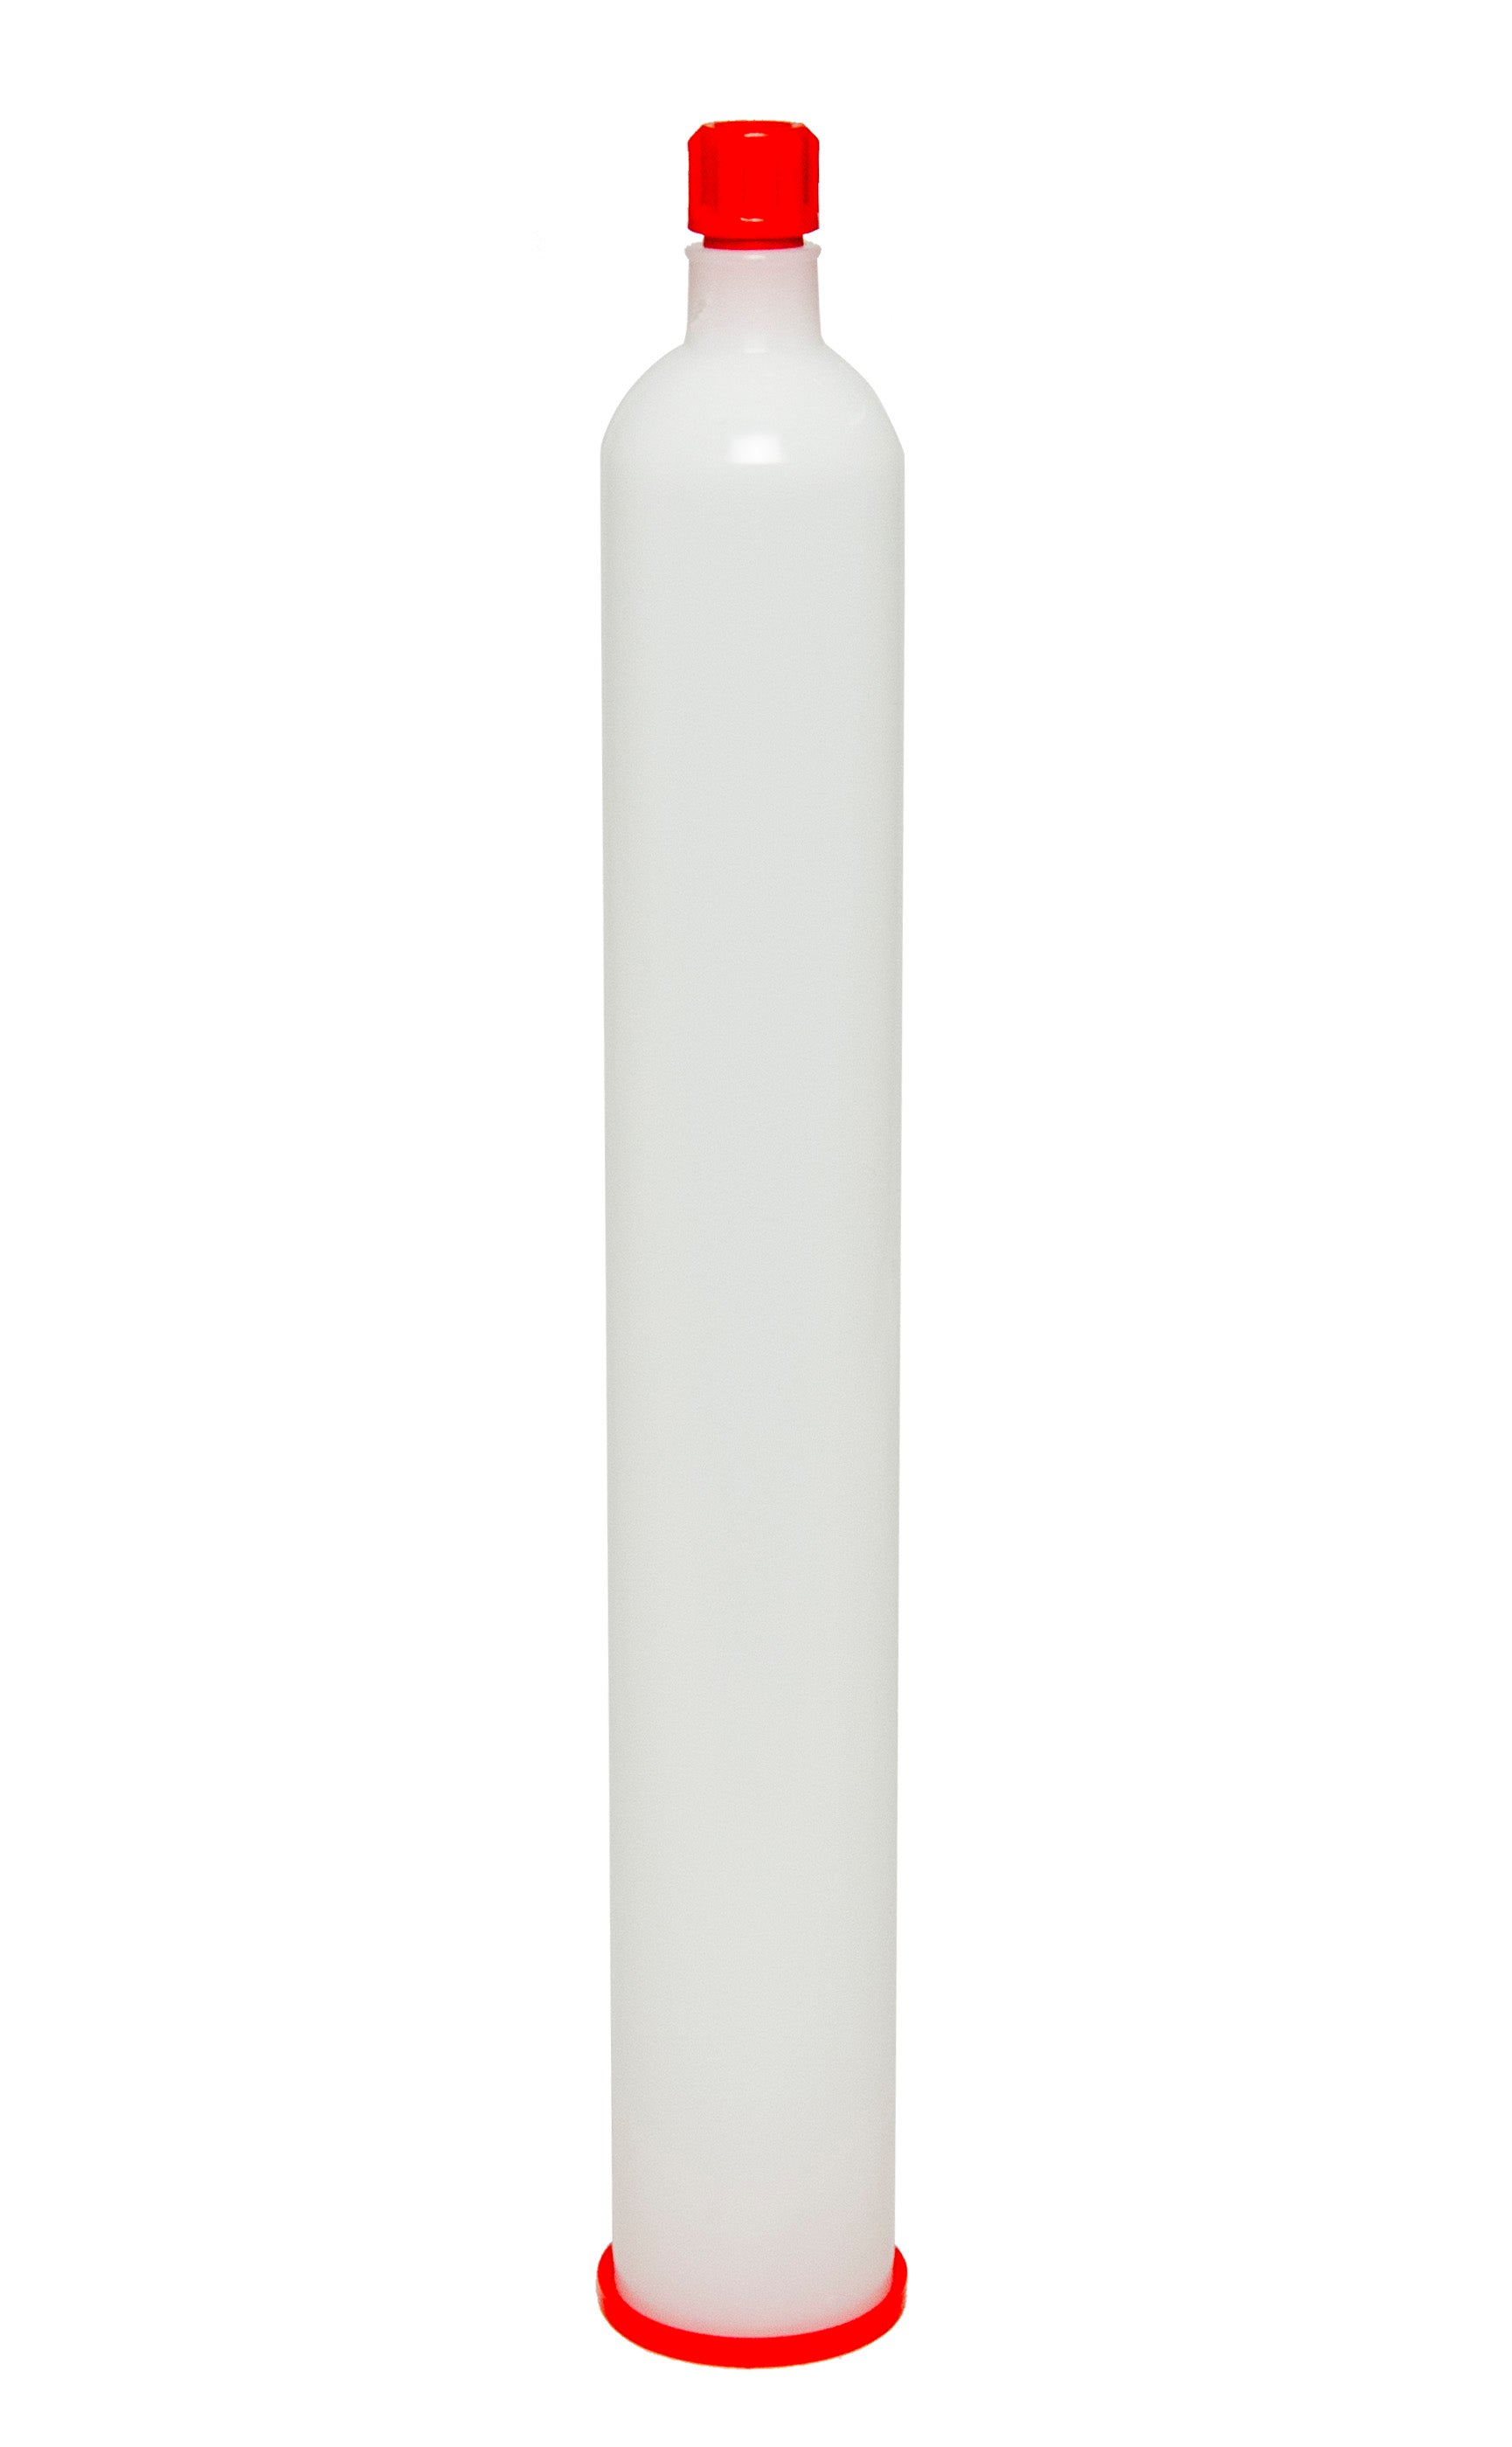 12oz size natural cartridge HDPE vertical